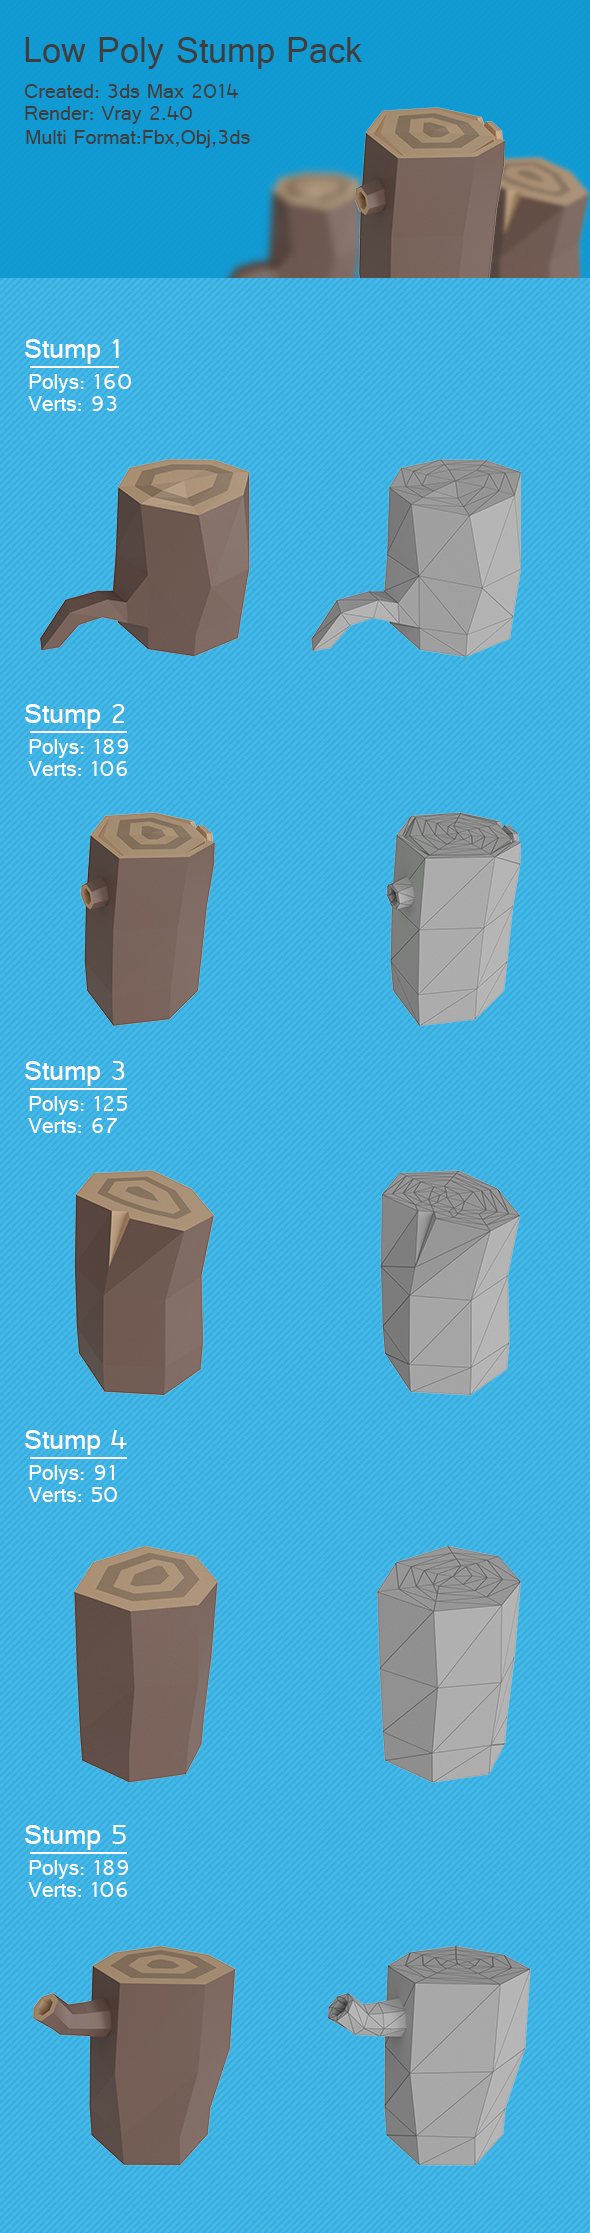 Low-Poly Stump Pack - 3DOcean Item for Sale